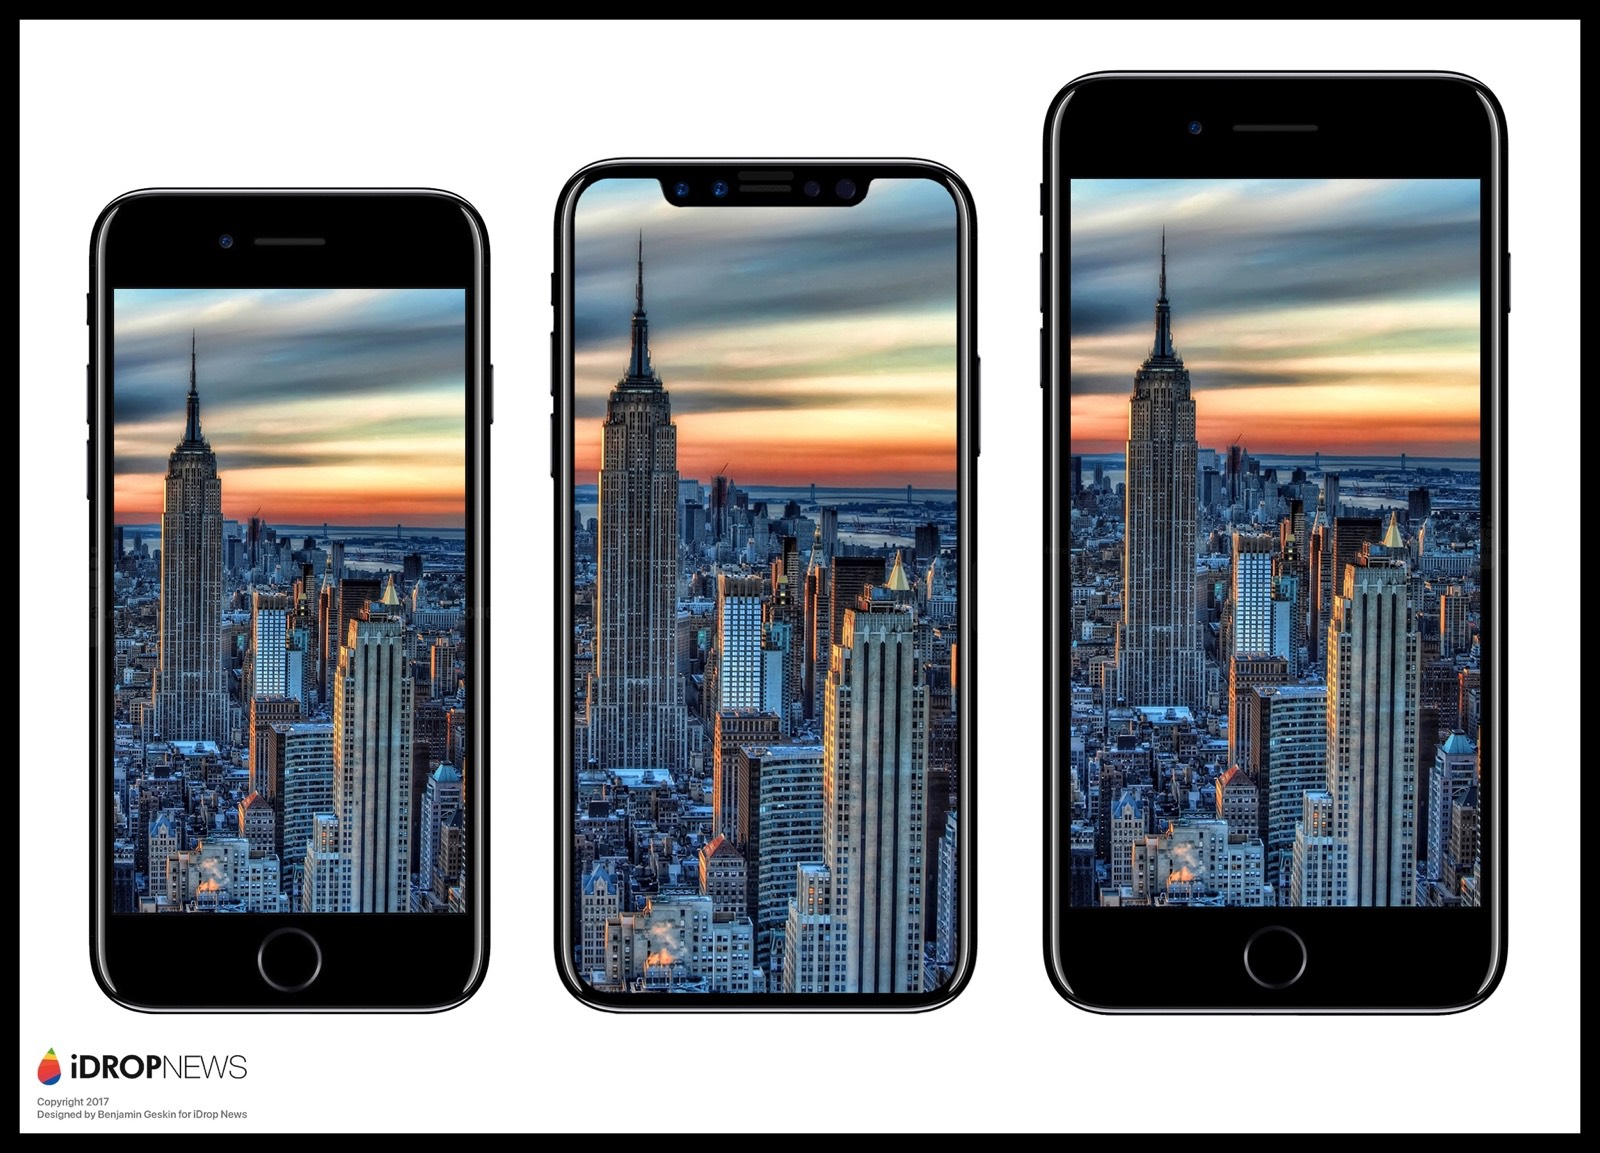 An iPhone 8 mockup from iDrop News, comparing it to the iPhone 7 and 7 Plus.